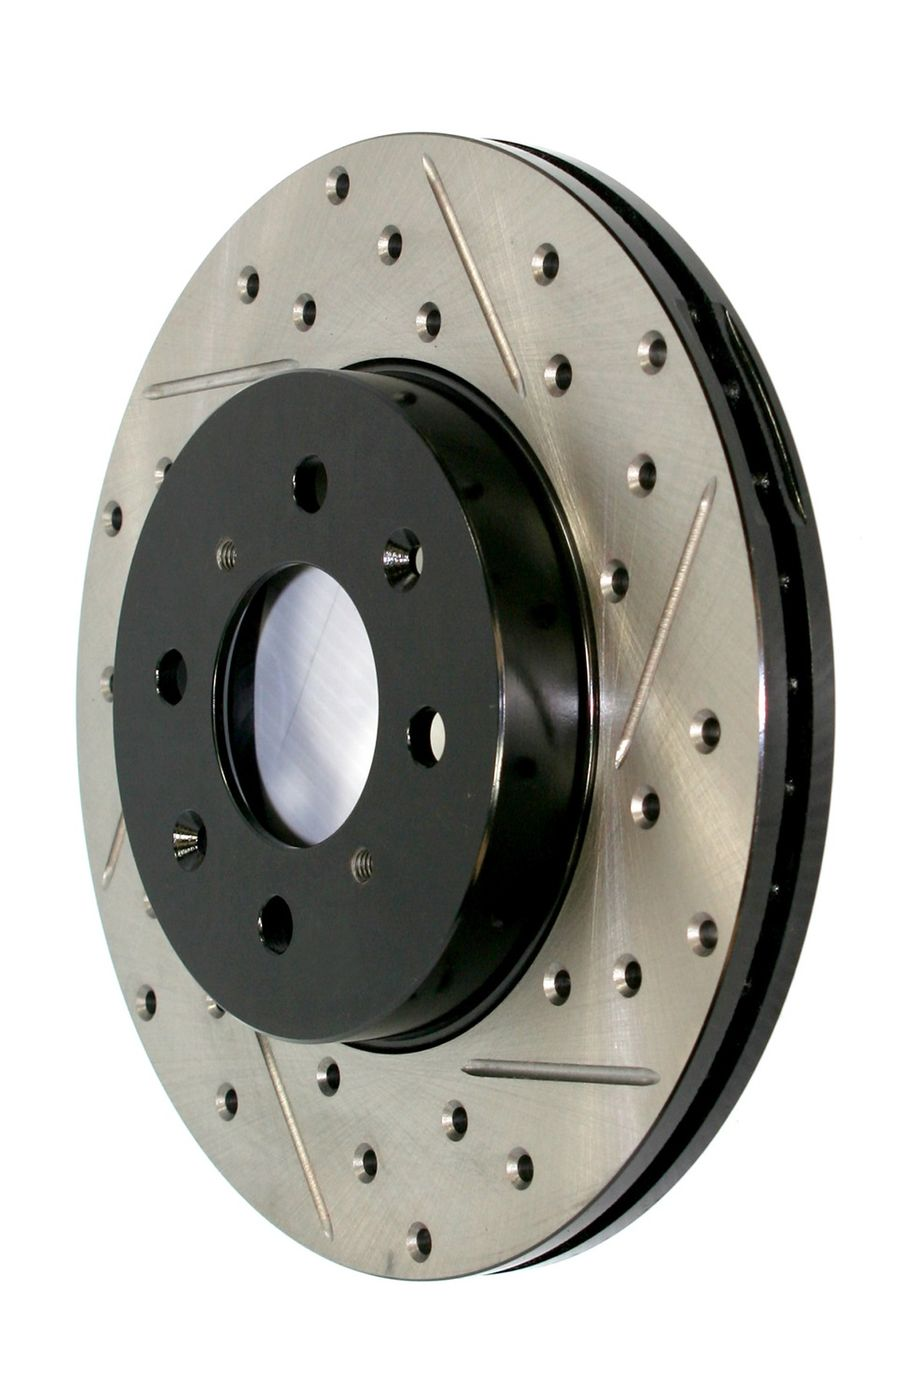 Jeep Grand Cherokee SRT8 StopTech Disc Brake Rotors Brakes StopTech Sport Drilled/Slotted Disc 127.58004R